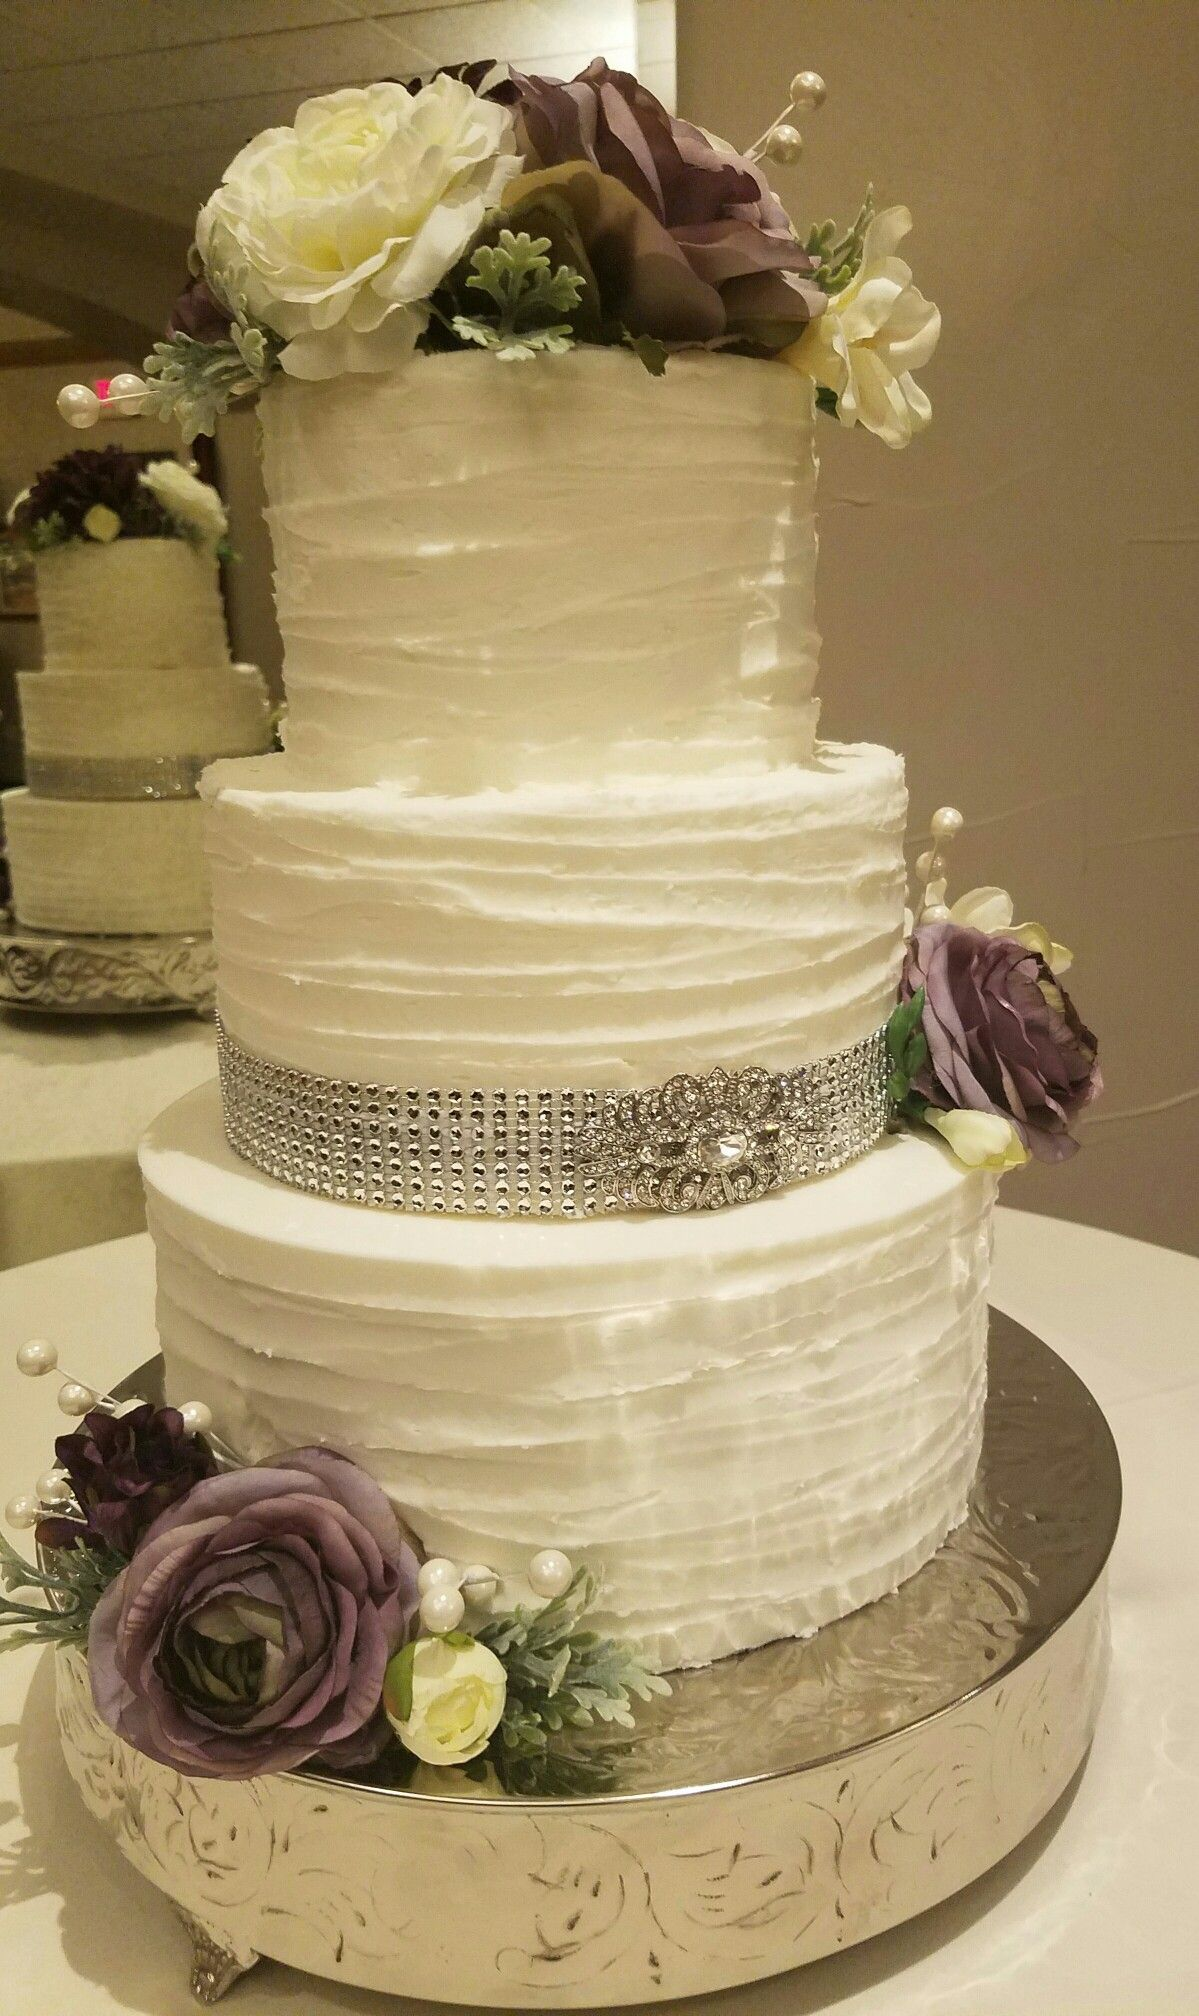 purple and white flowers and bling rustic wedding cake